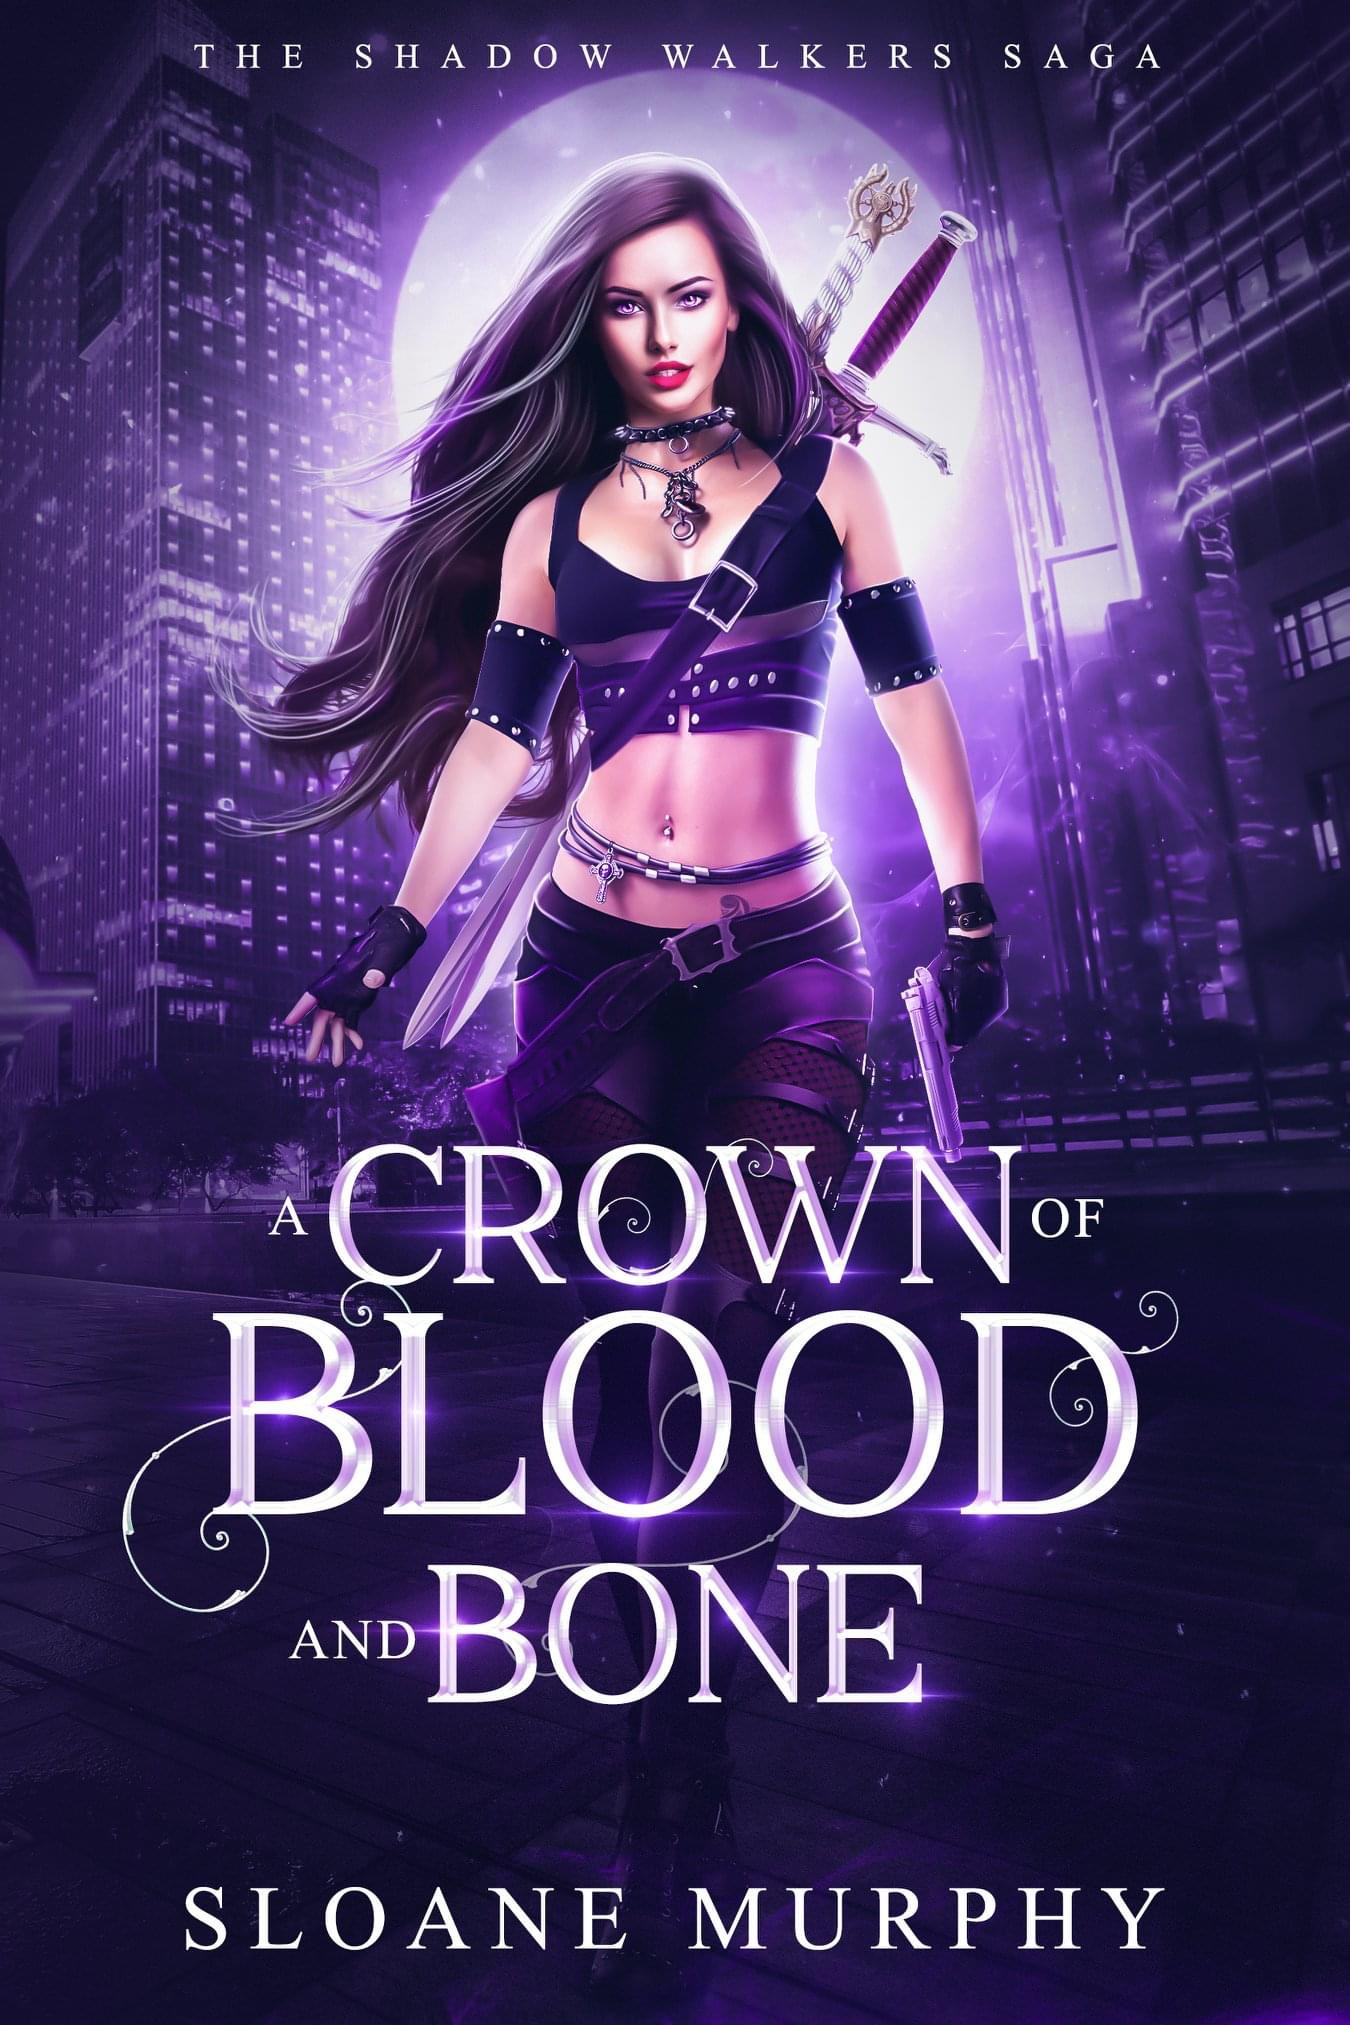 A Crown of Blood and Bone - Sloane Murphy